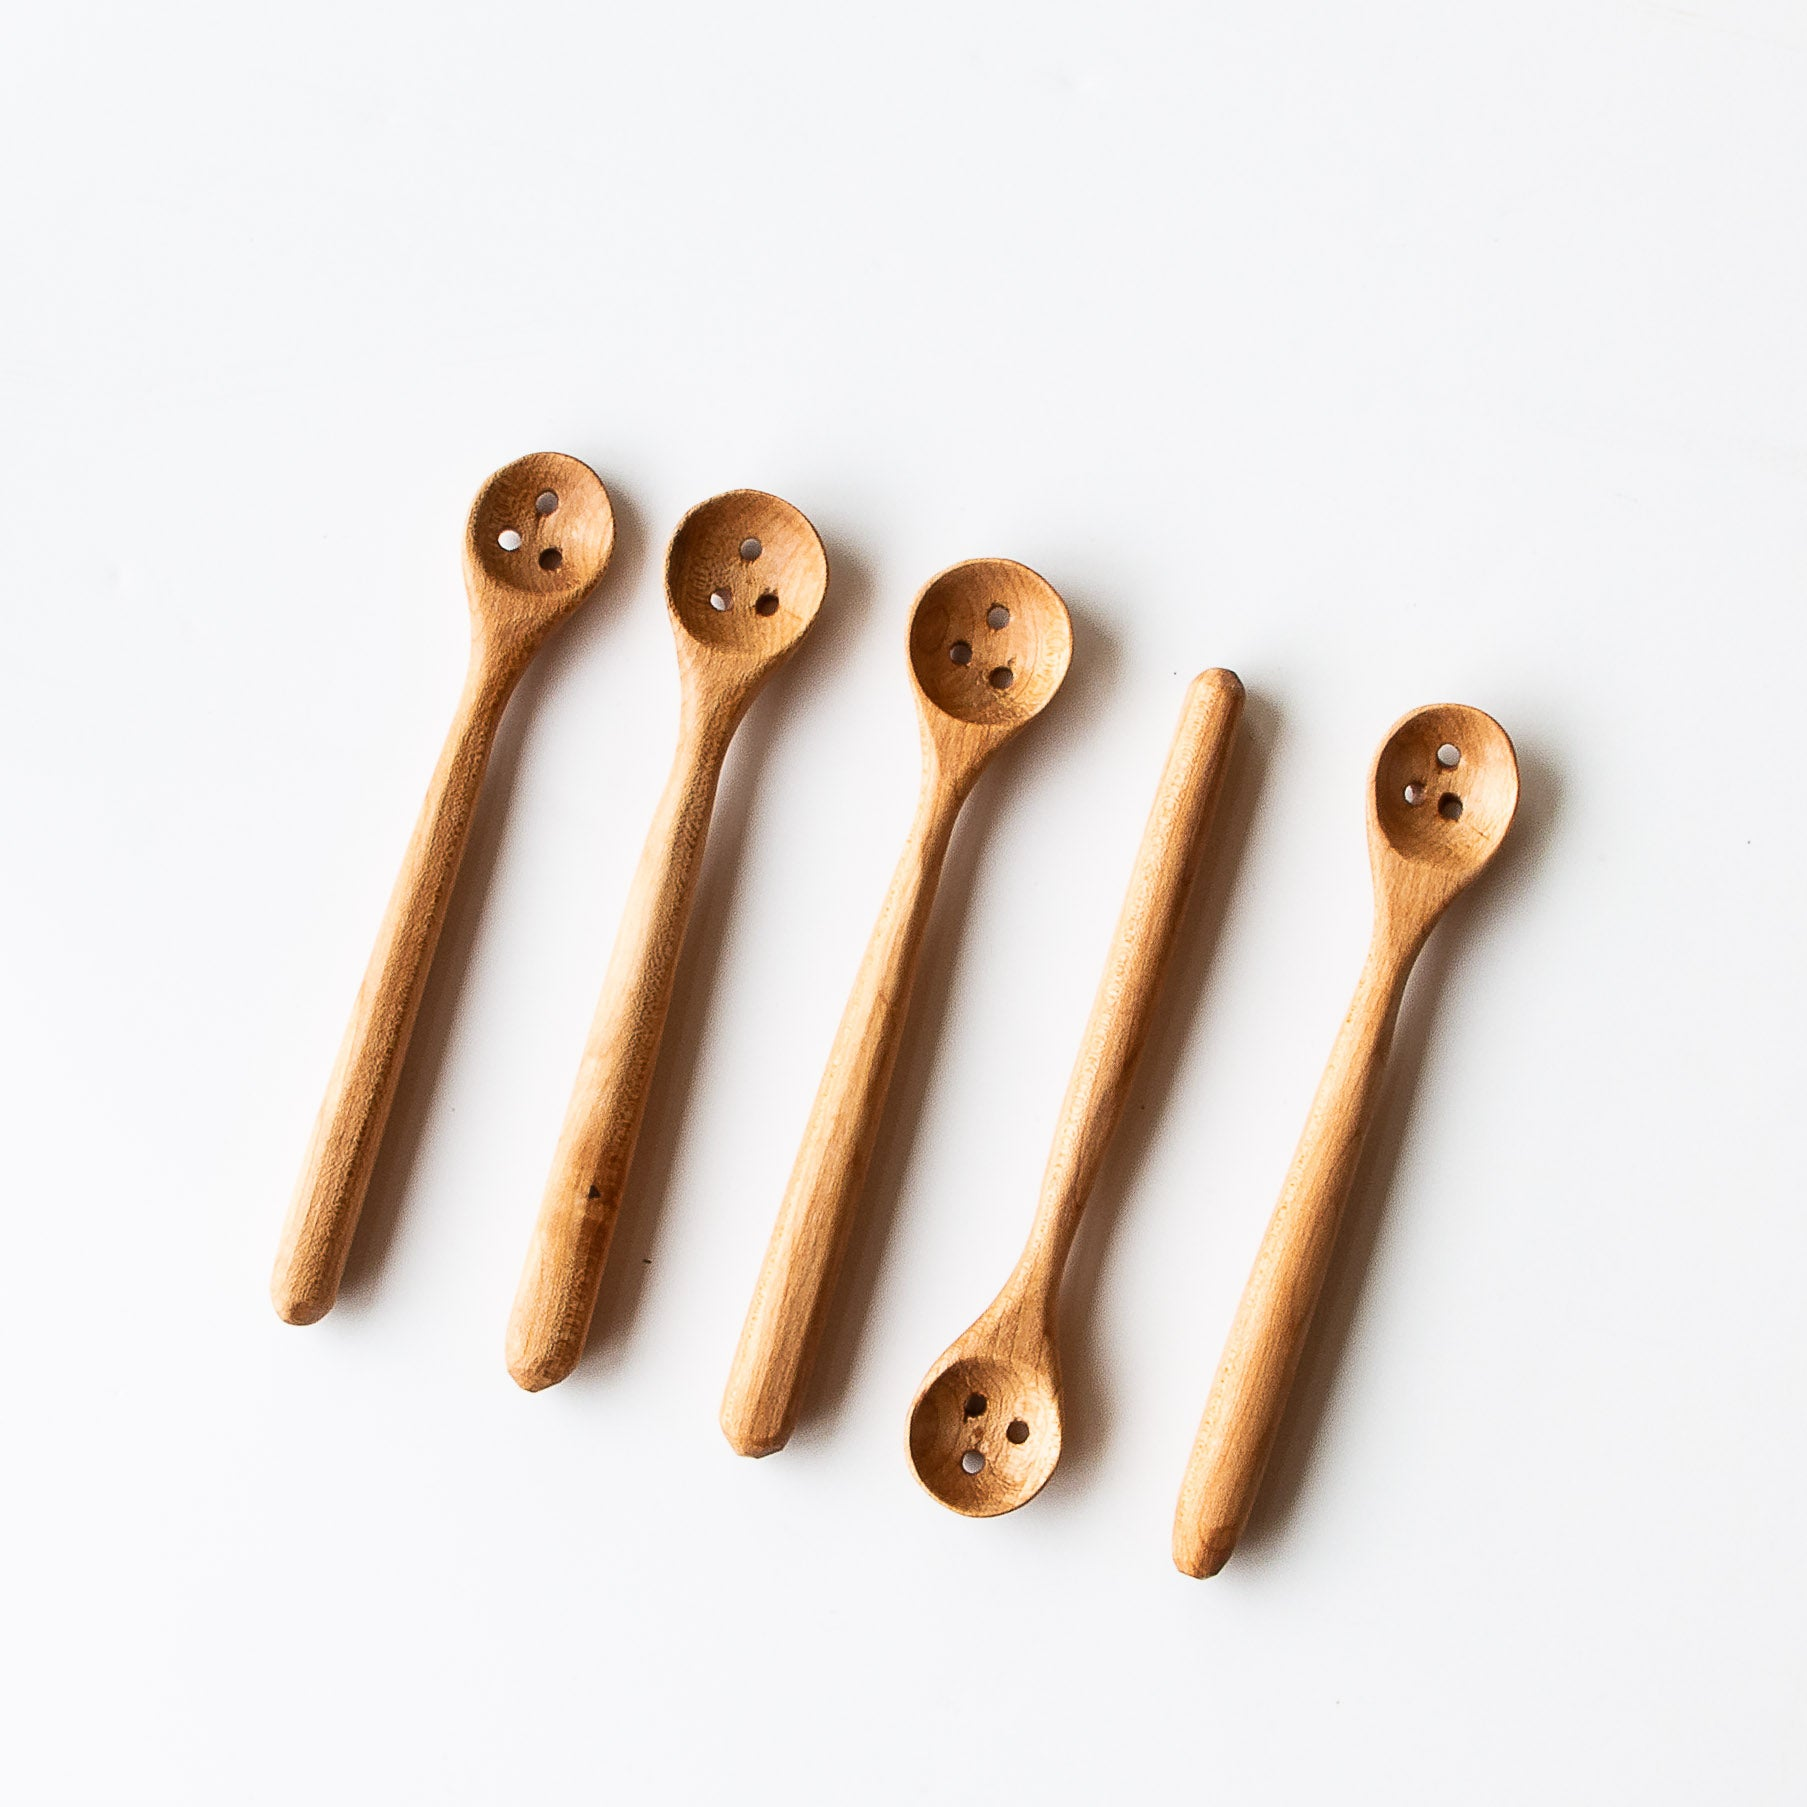 Five Handcrafted Wooden Olive Serving Spoons/Cherry Scoops w. Drain Holes - Sold by Chic & Basta